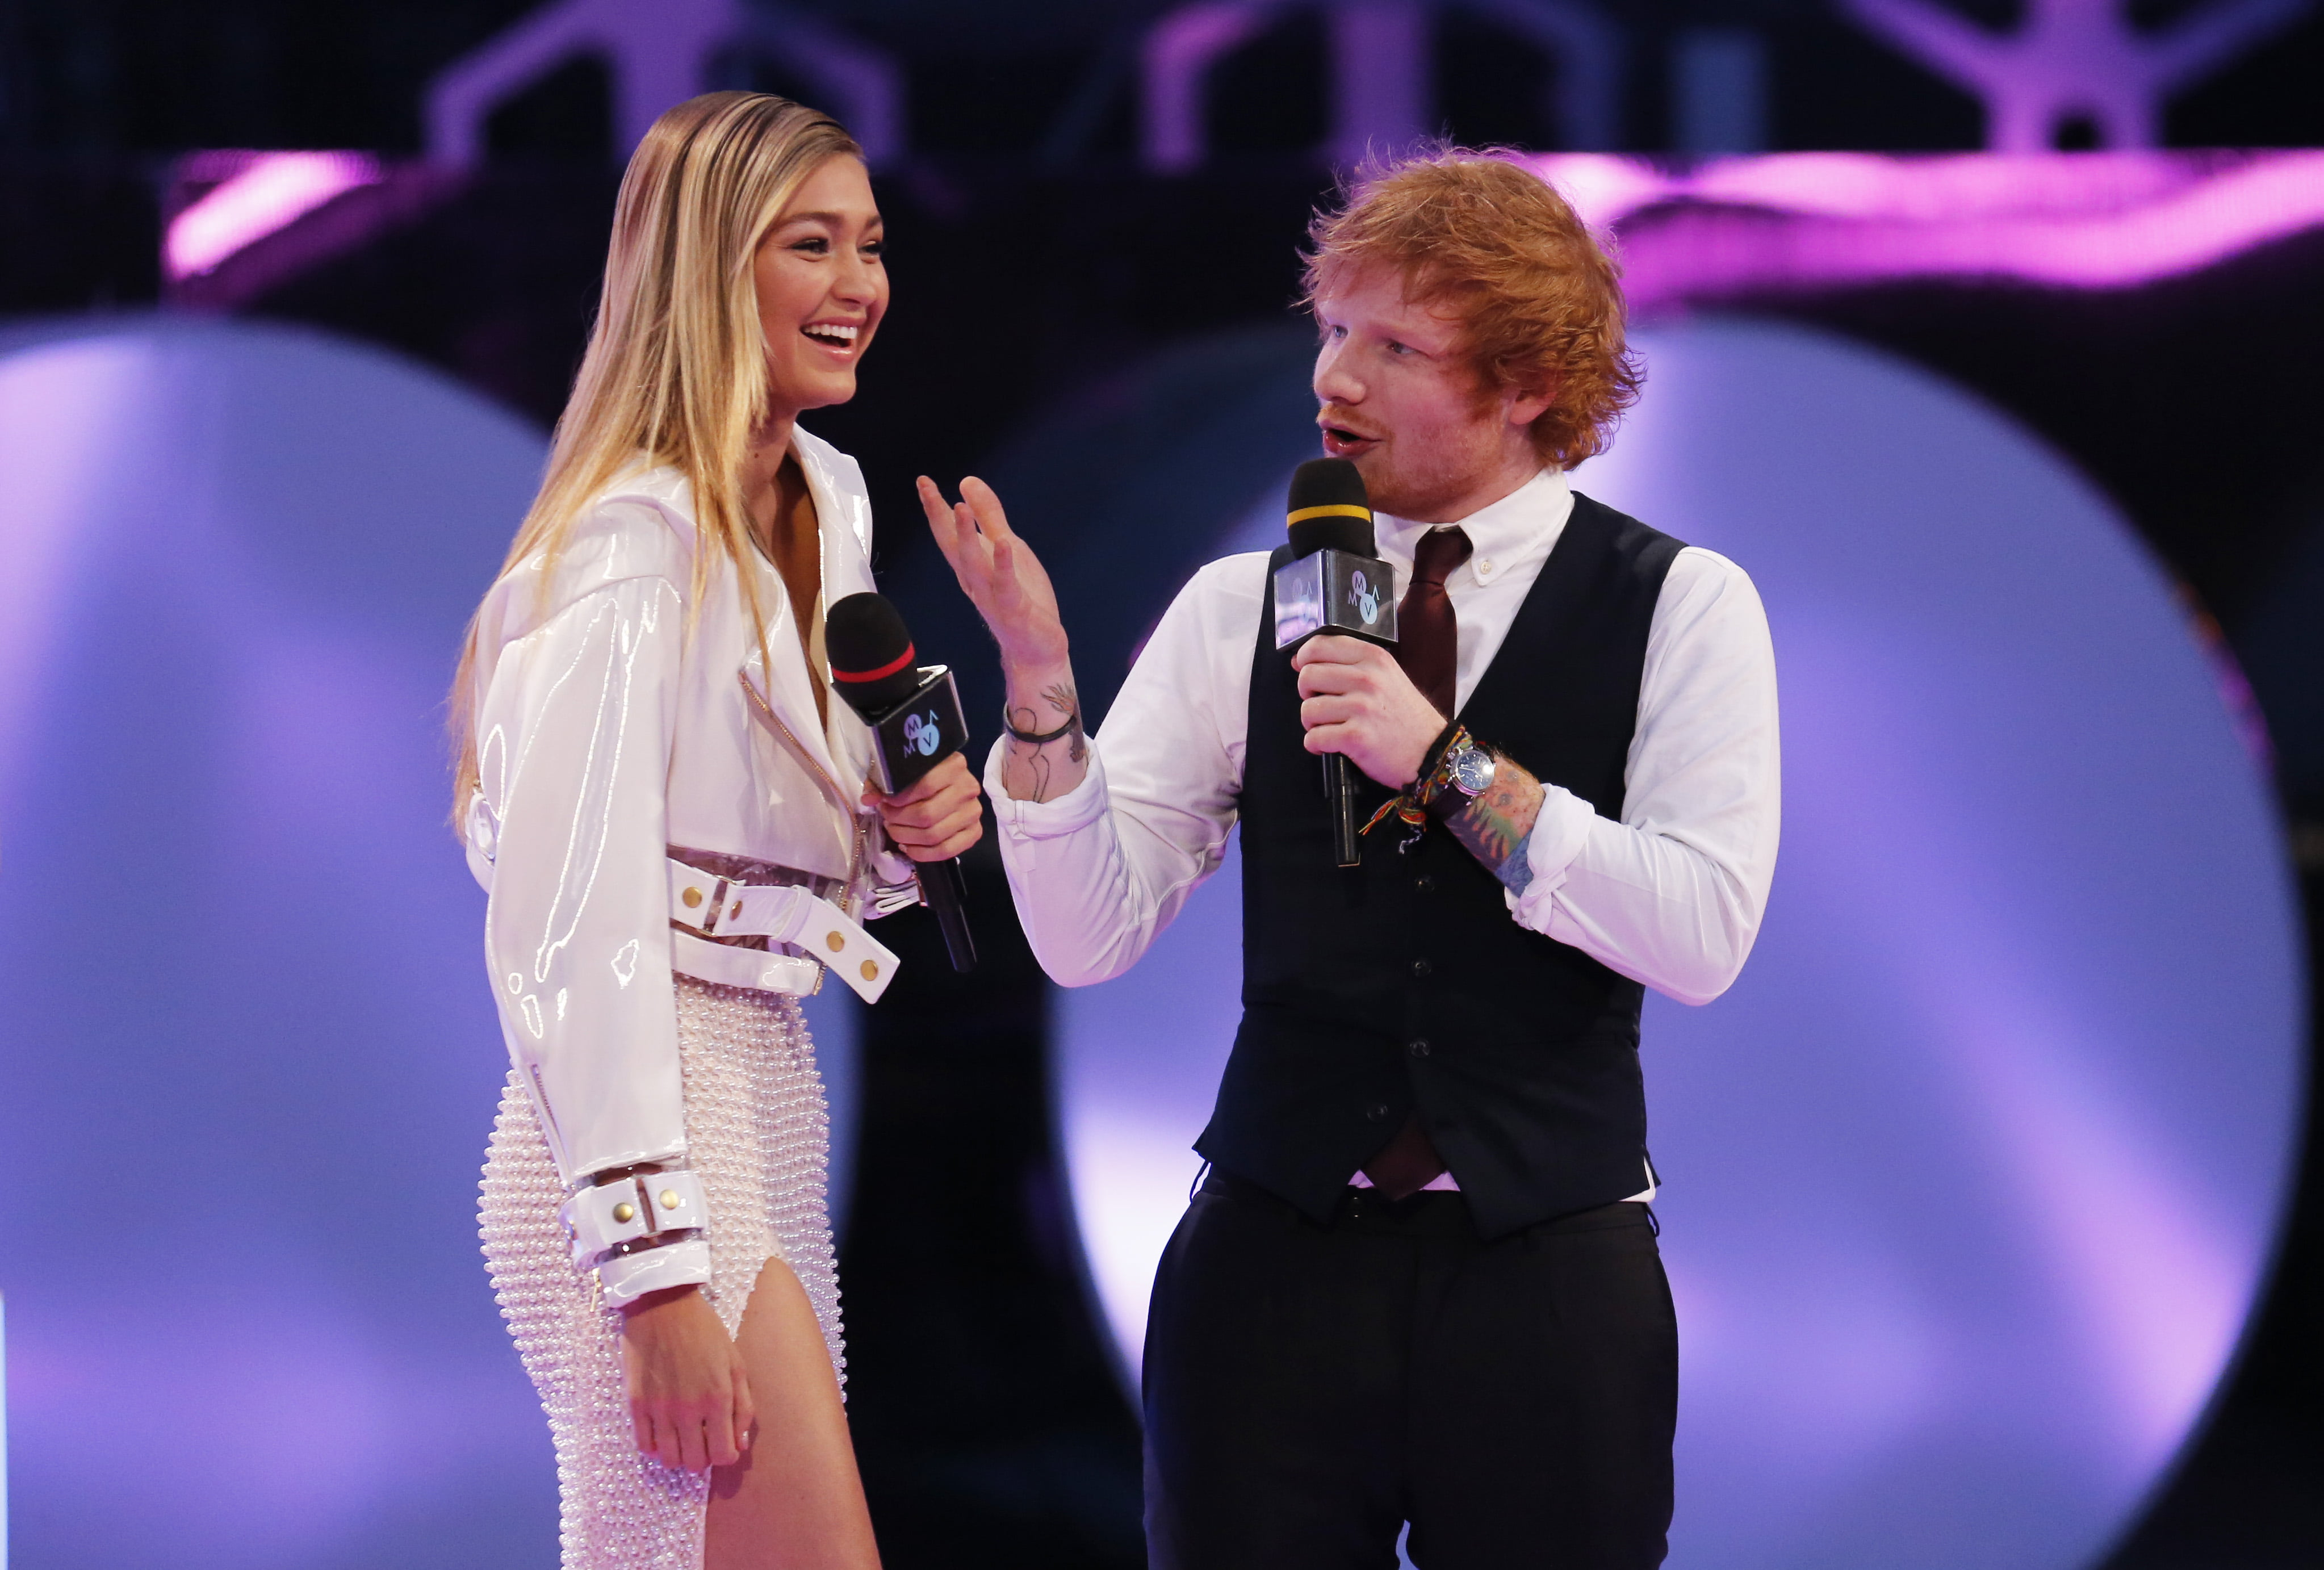 Gigi Hadid and Ed Sheeran